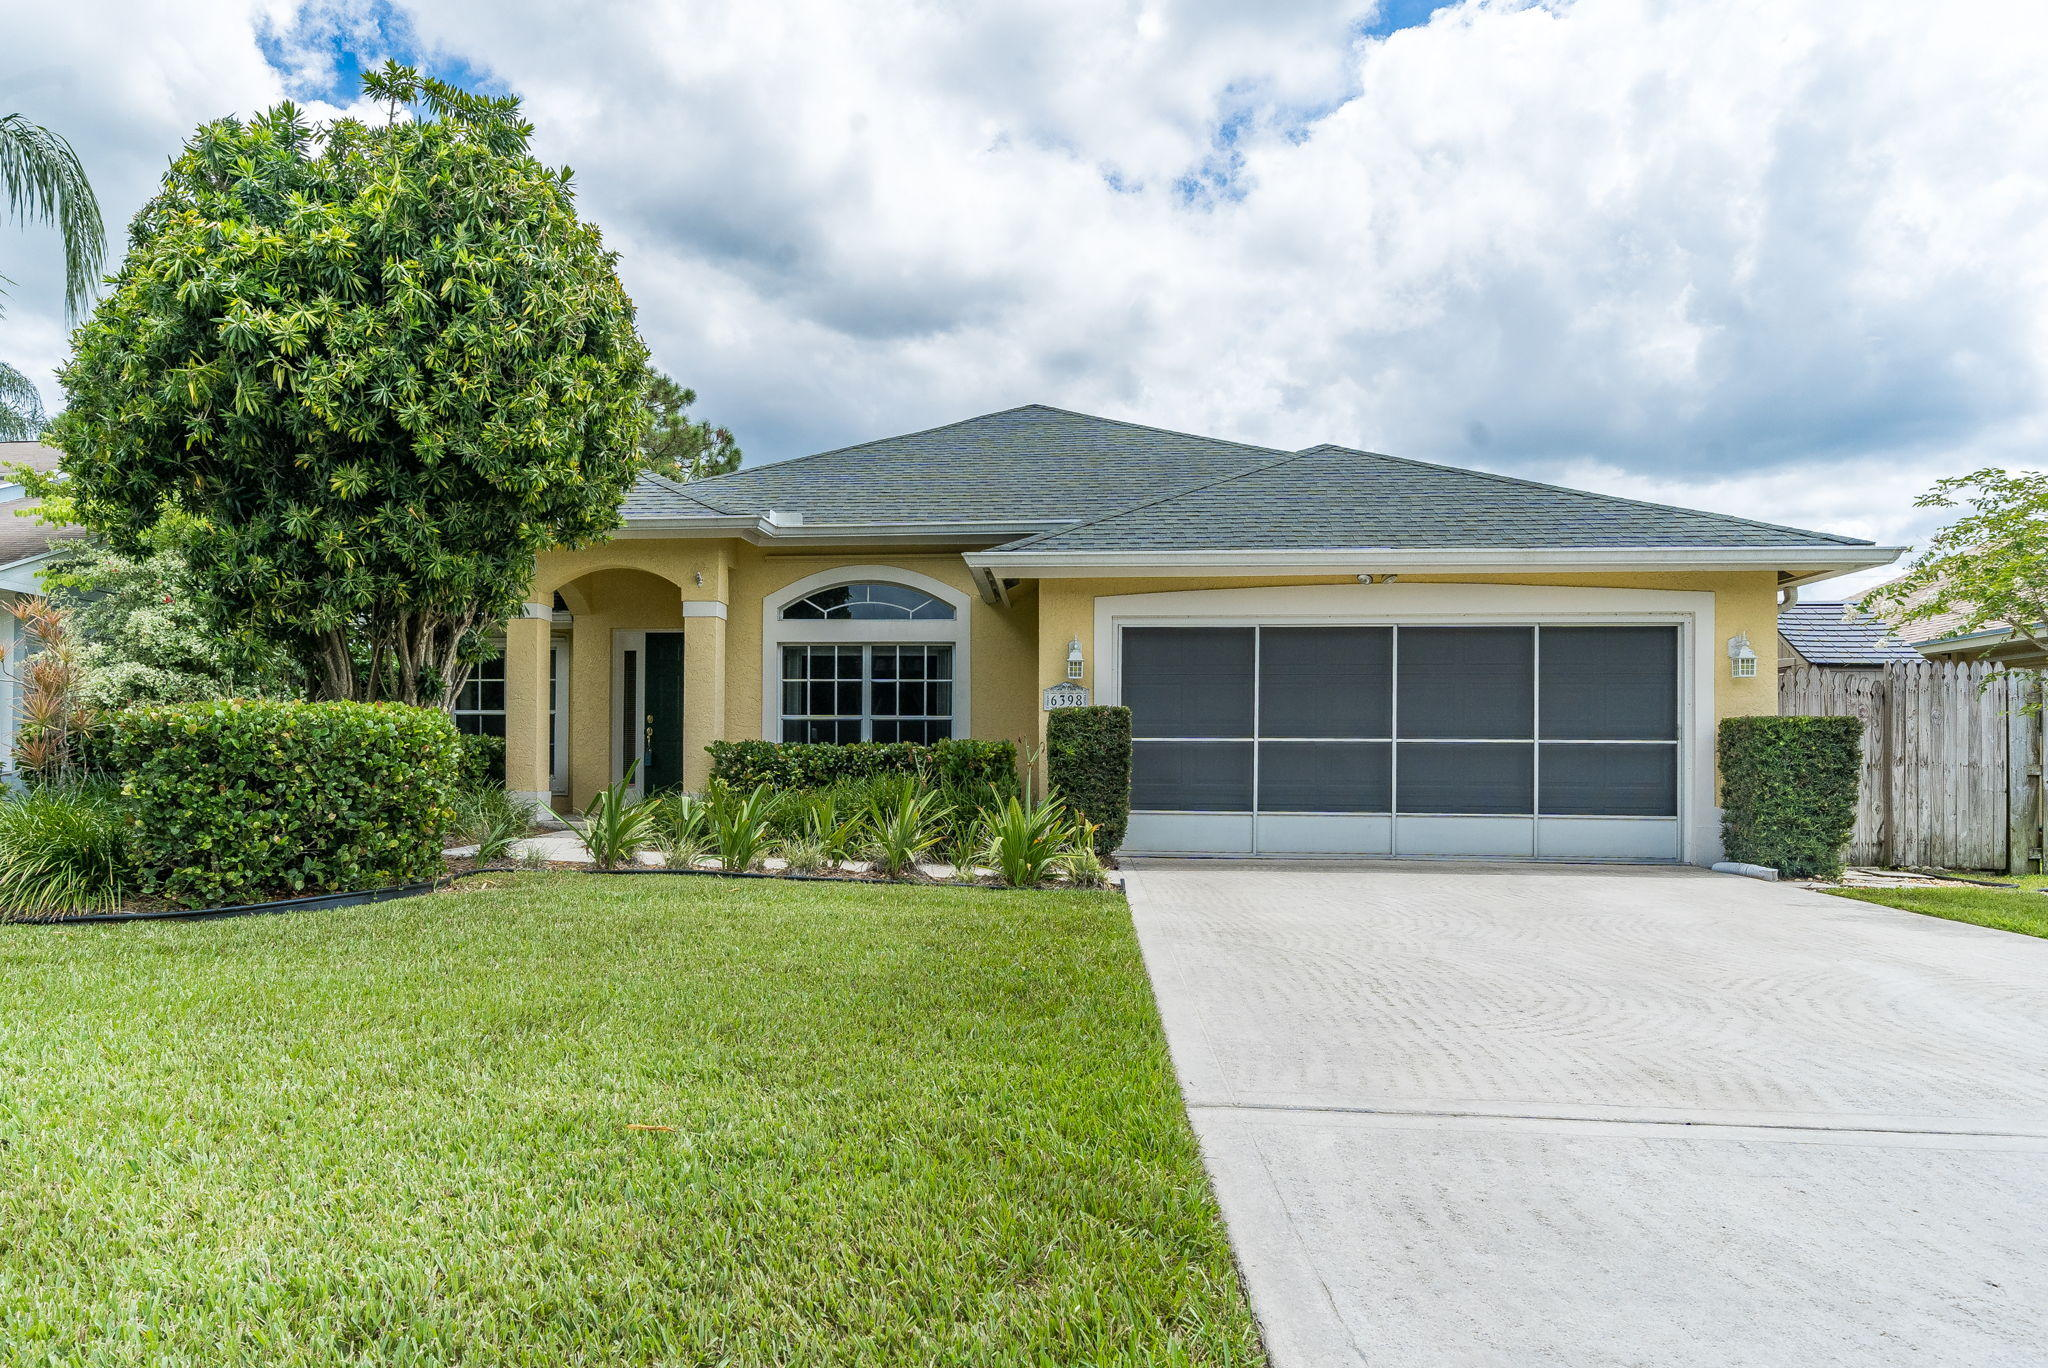 Photo of 6398 Leslie Street, Jupiter, FL 33458